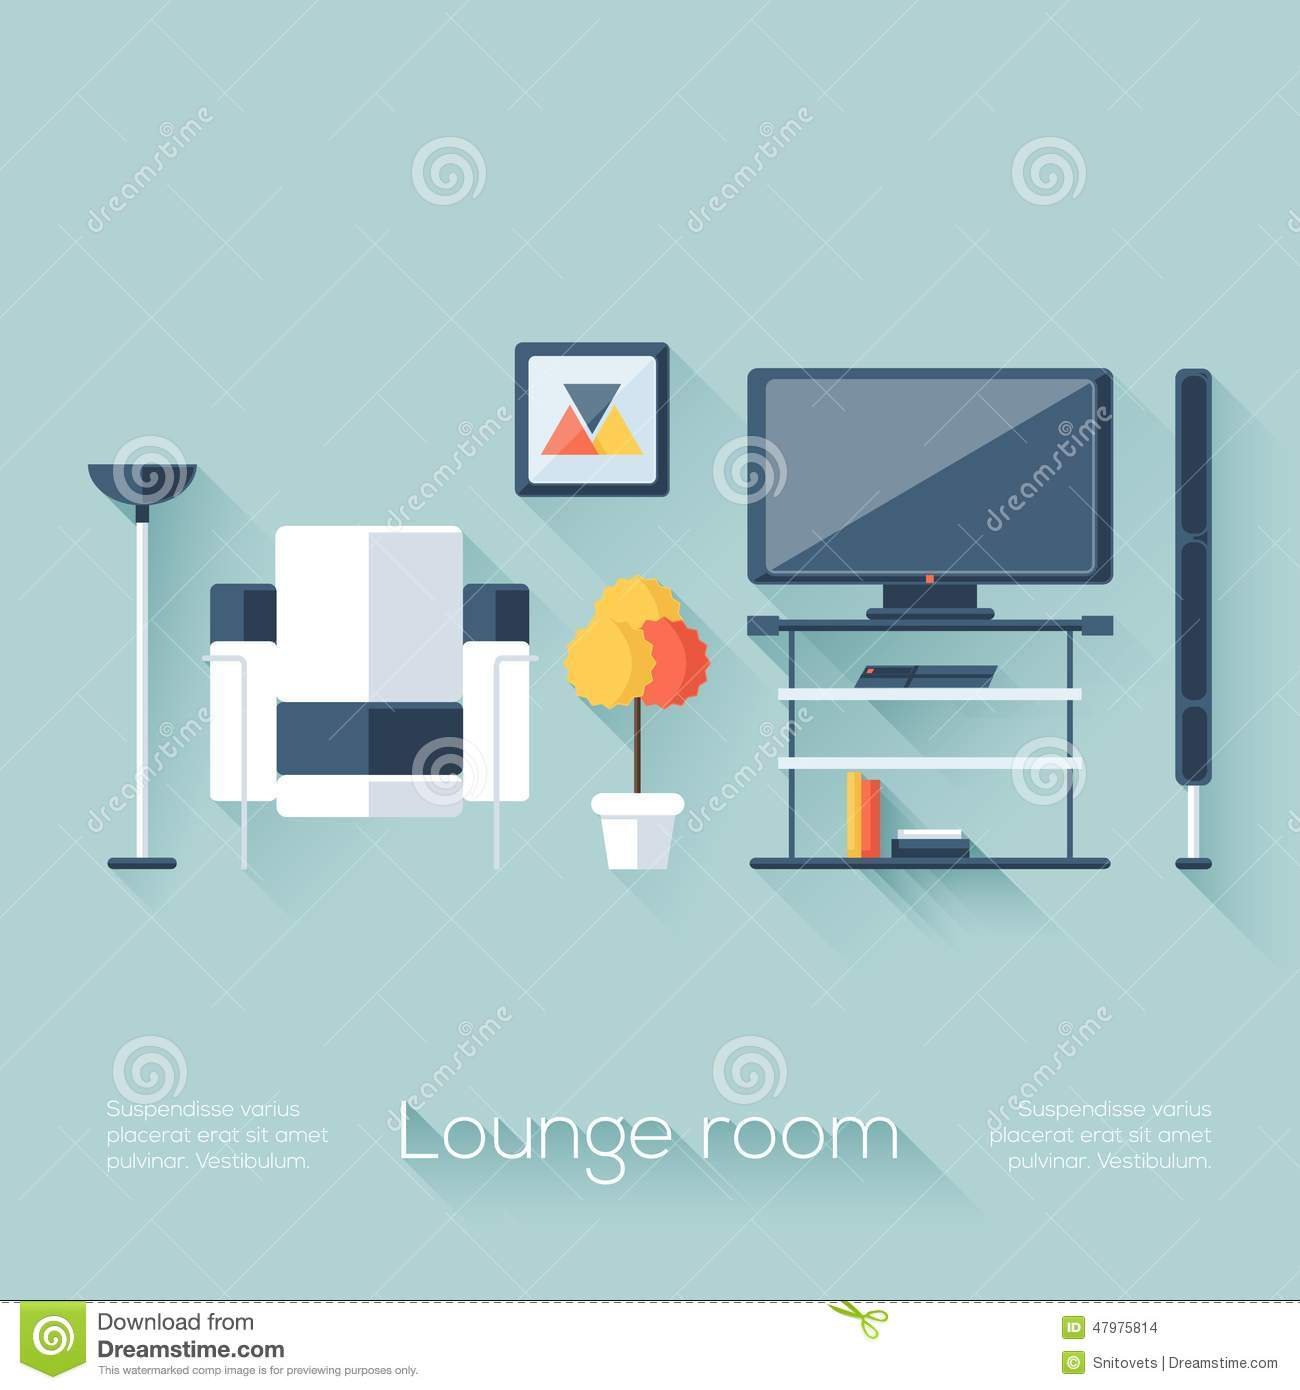 Lounge Or Sitting Room Cover With TV, Console, Sofa